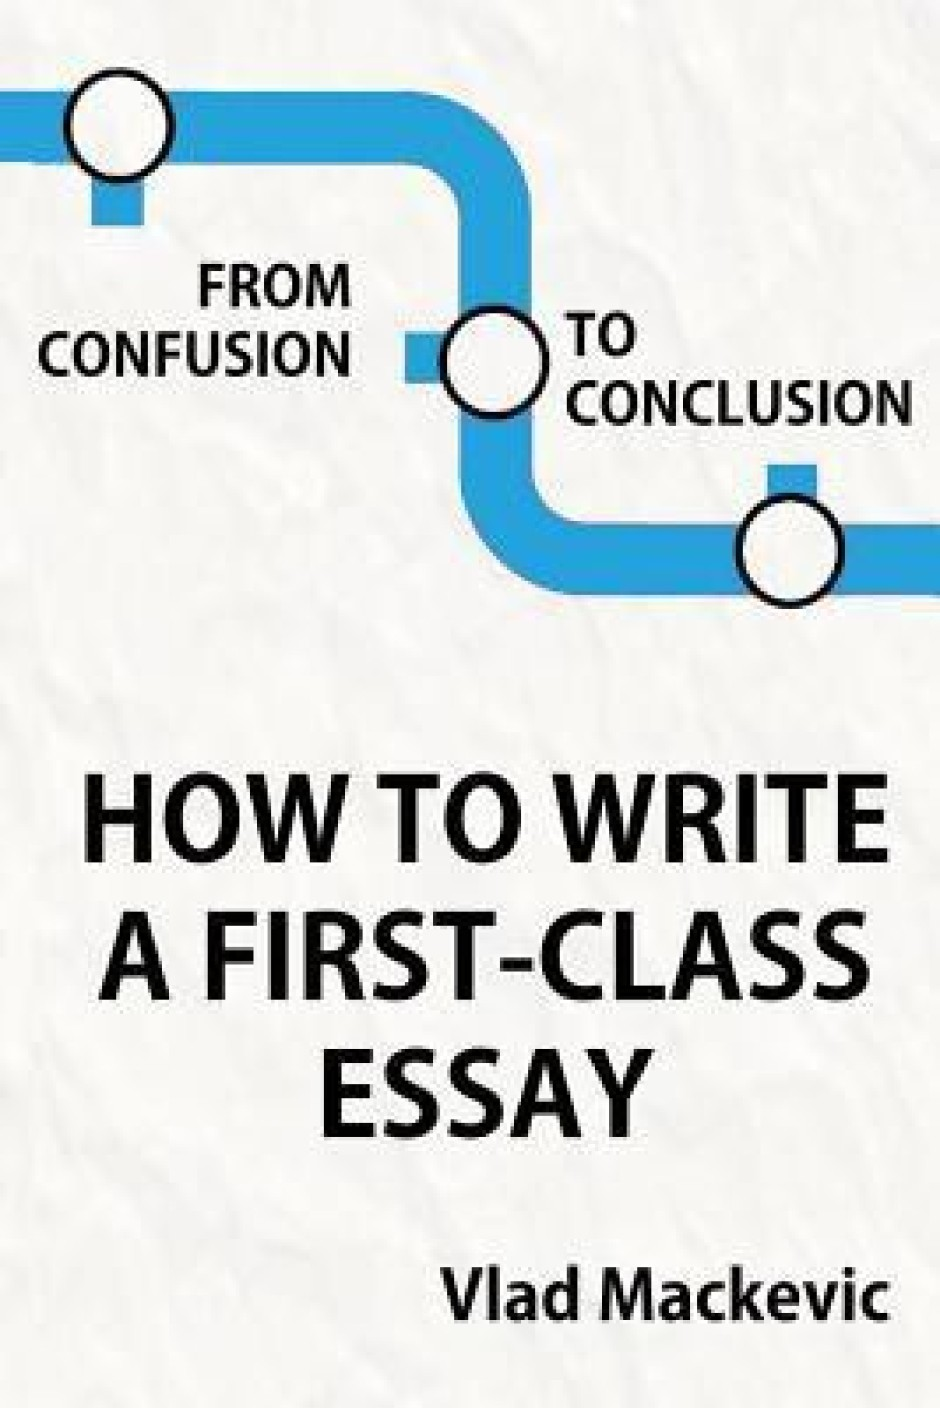 first class essays from confusion to conclusion how to write a  from confusion to conclusion how to write a first class essay first class essay add to